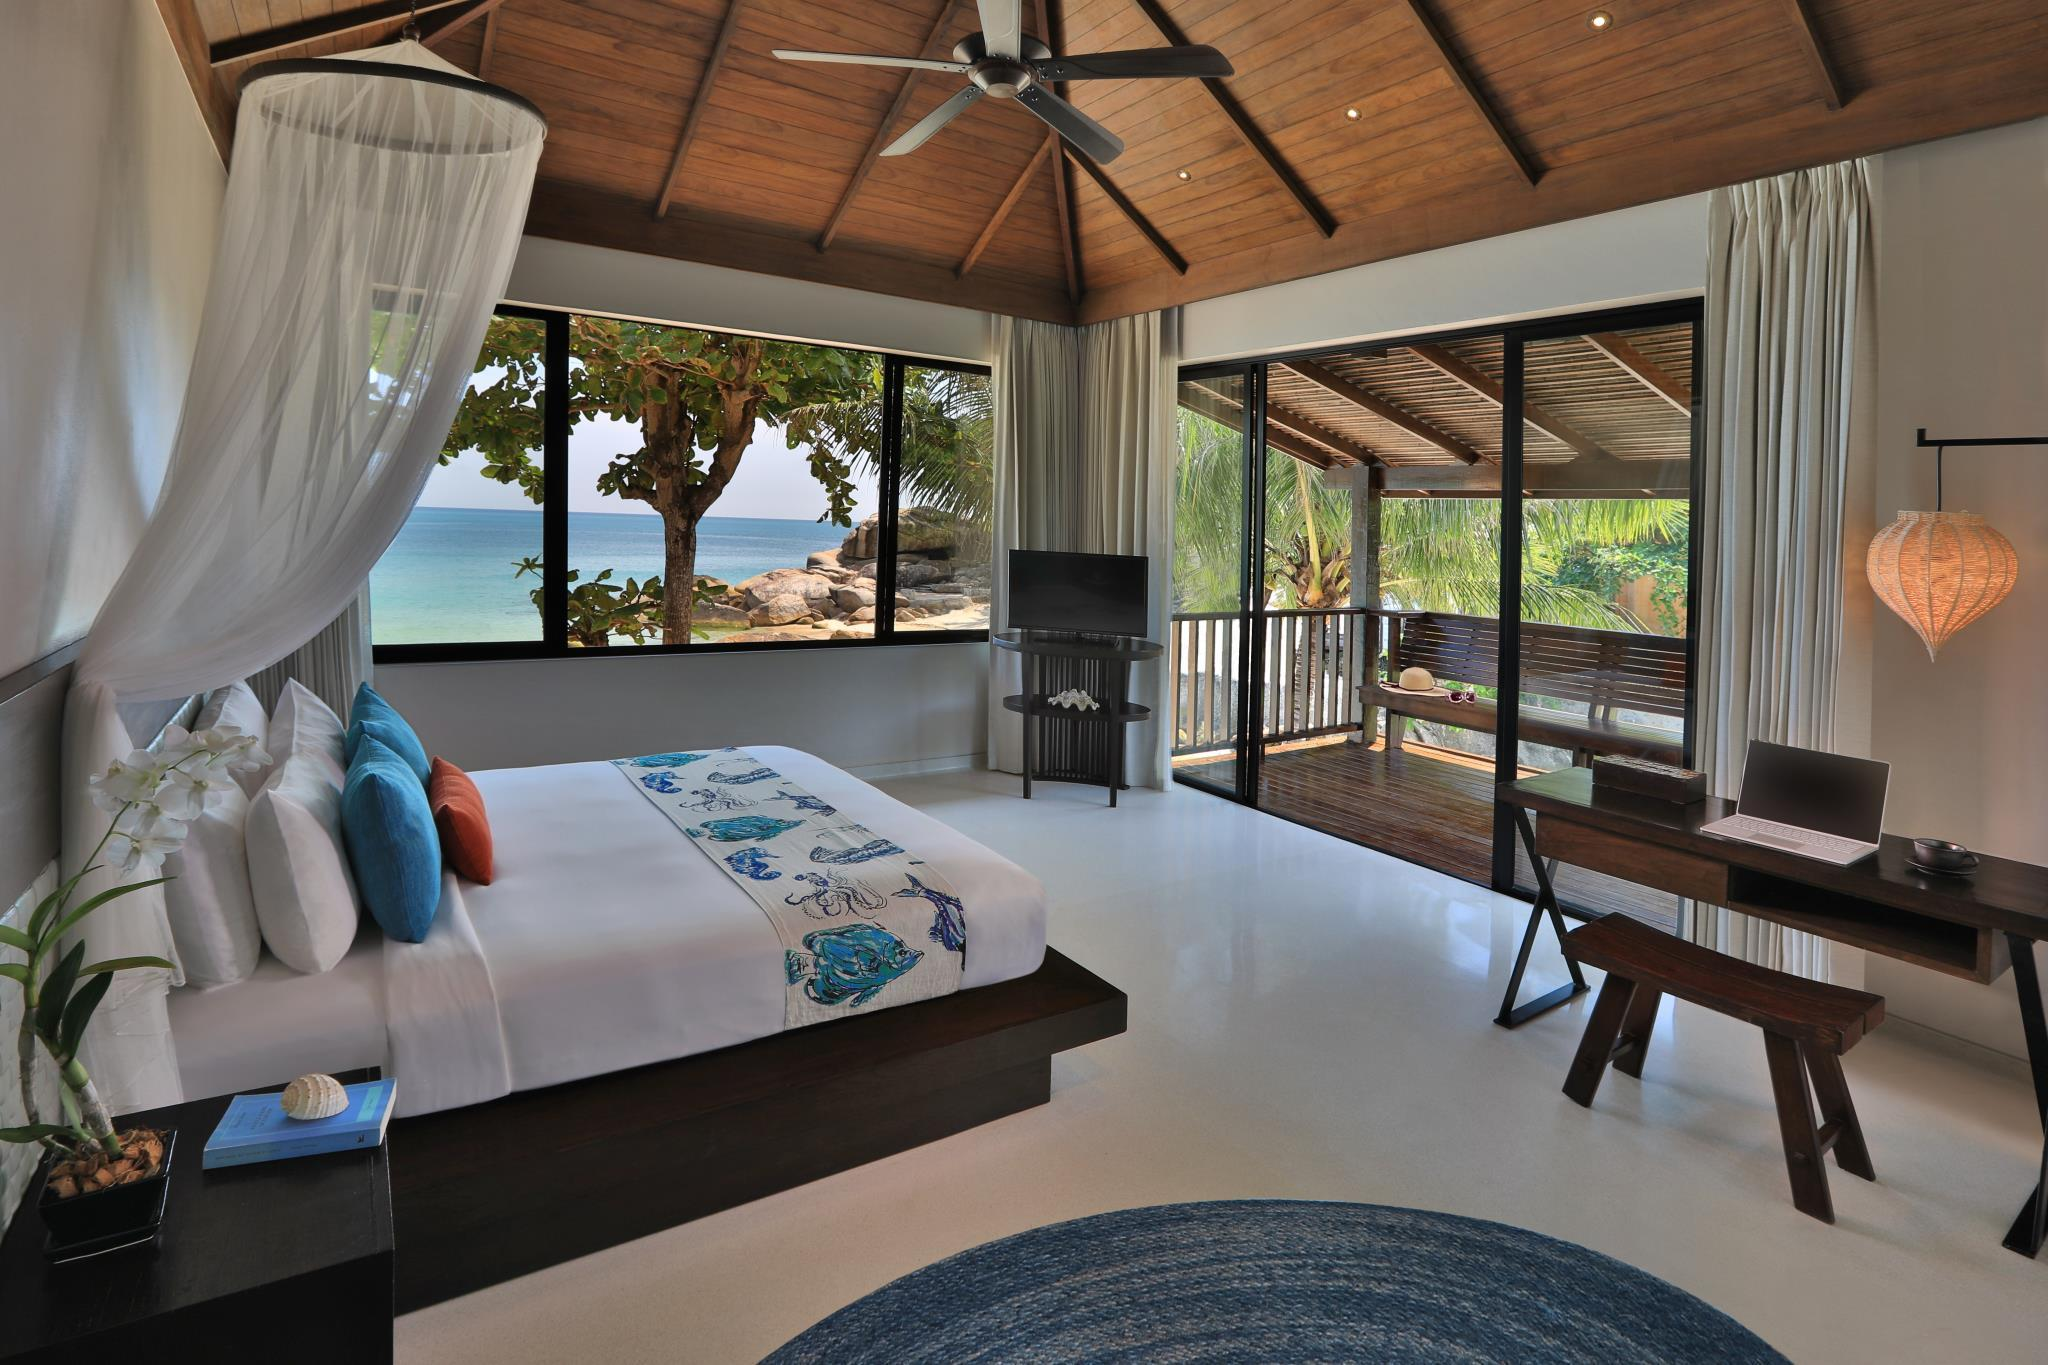 Rasa Ocean View Room